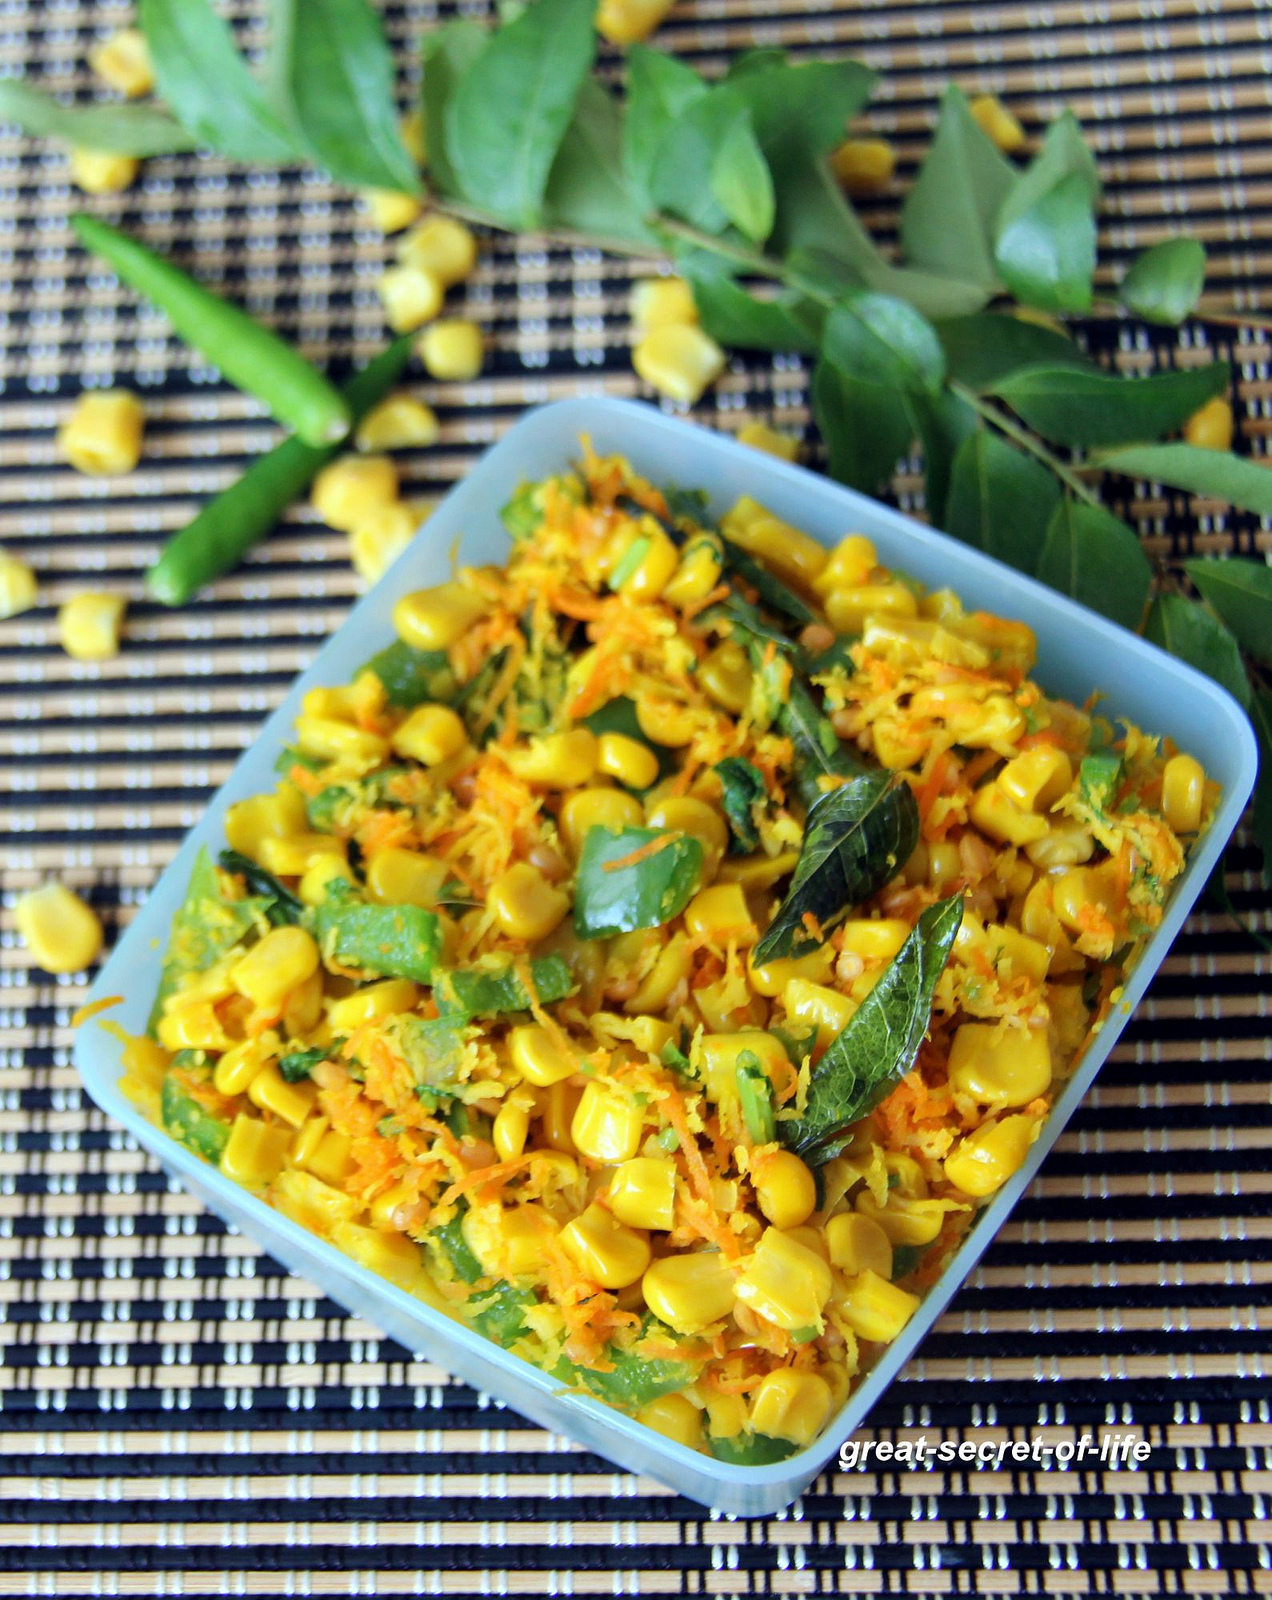 Corn Sundal - Corn salad - healthy snack recipe - Pooja recipes - naivedyam recipes - vinayagar chaturthi recipes